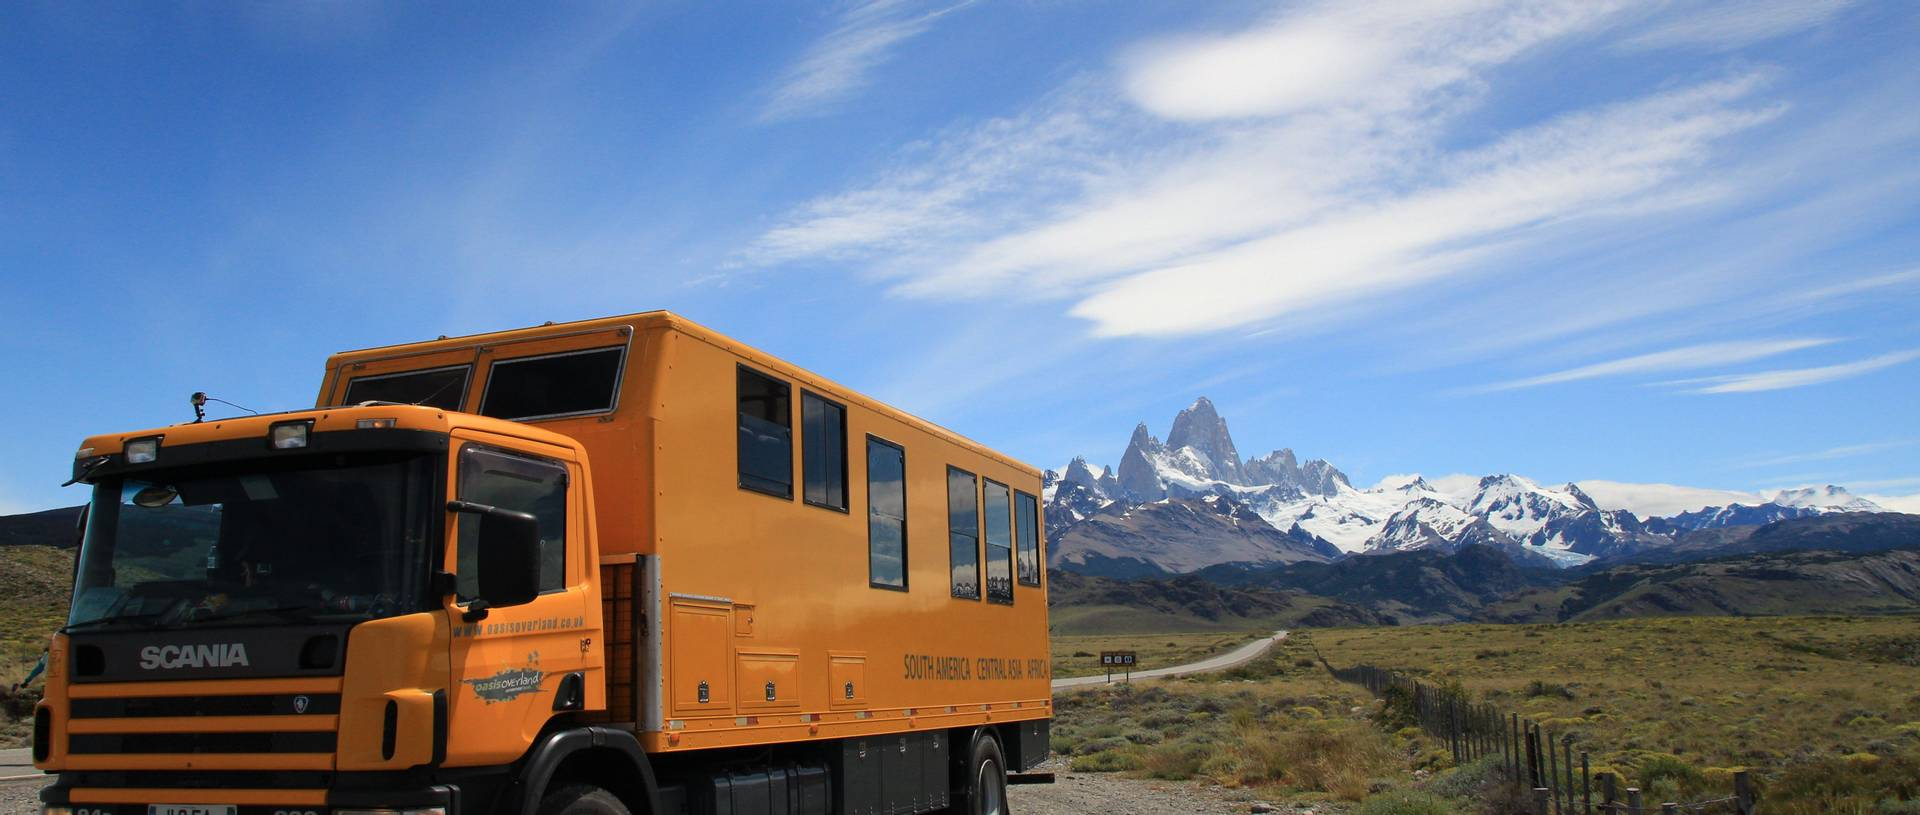 Truck with El Chaten mountain range in the background.JPG